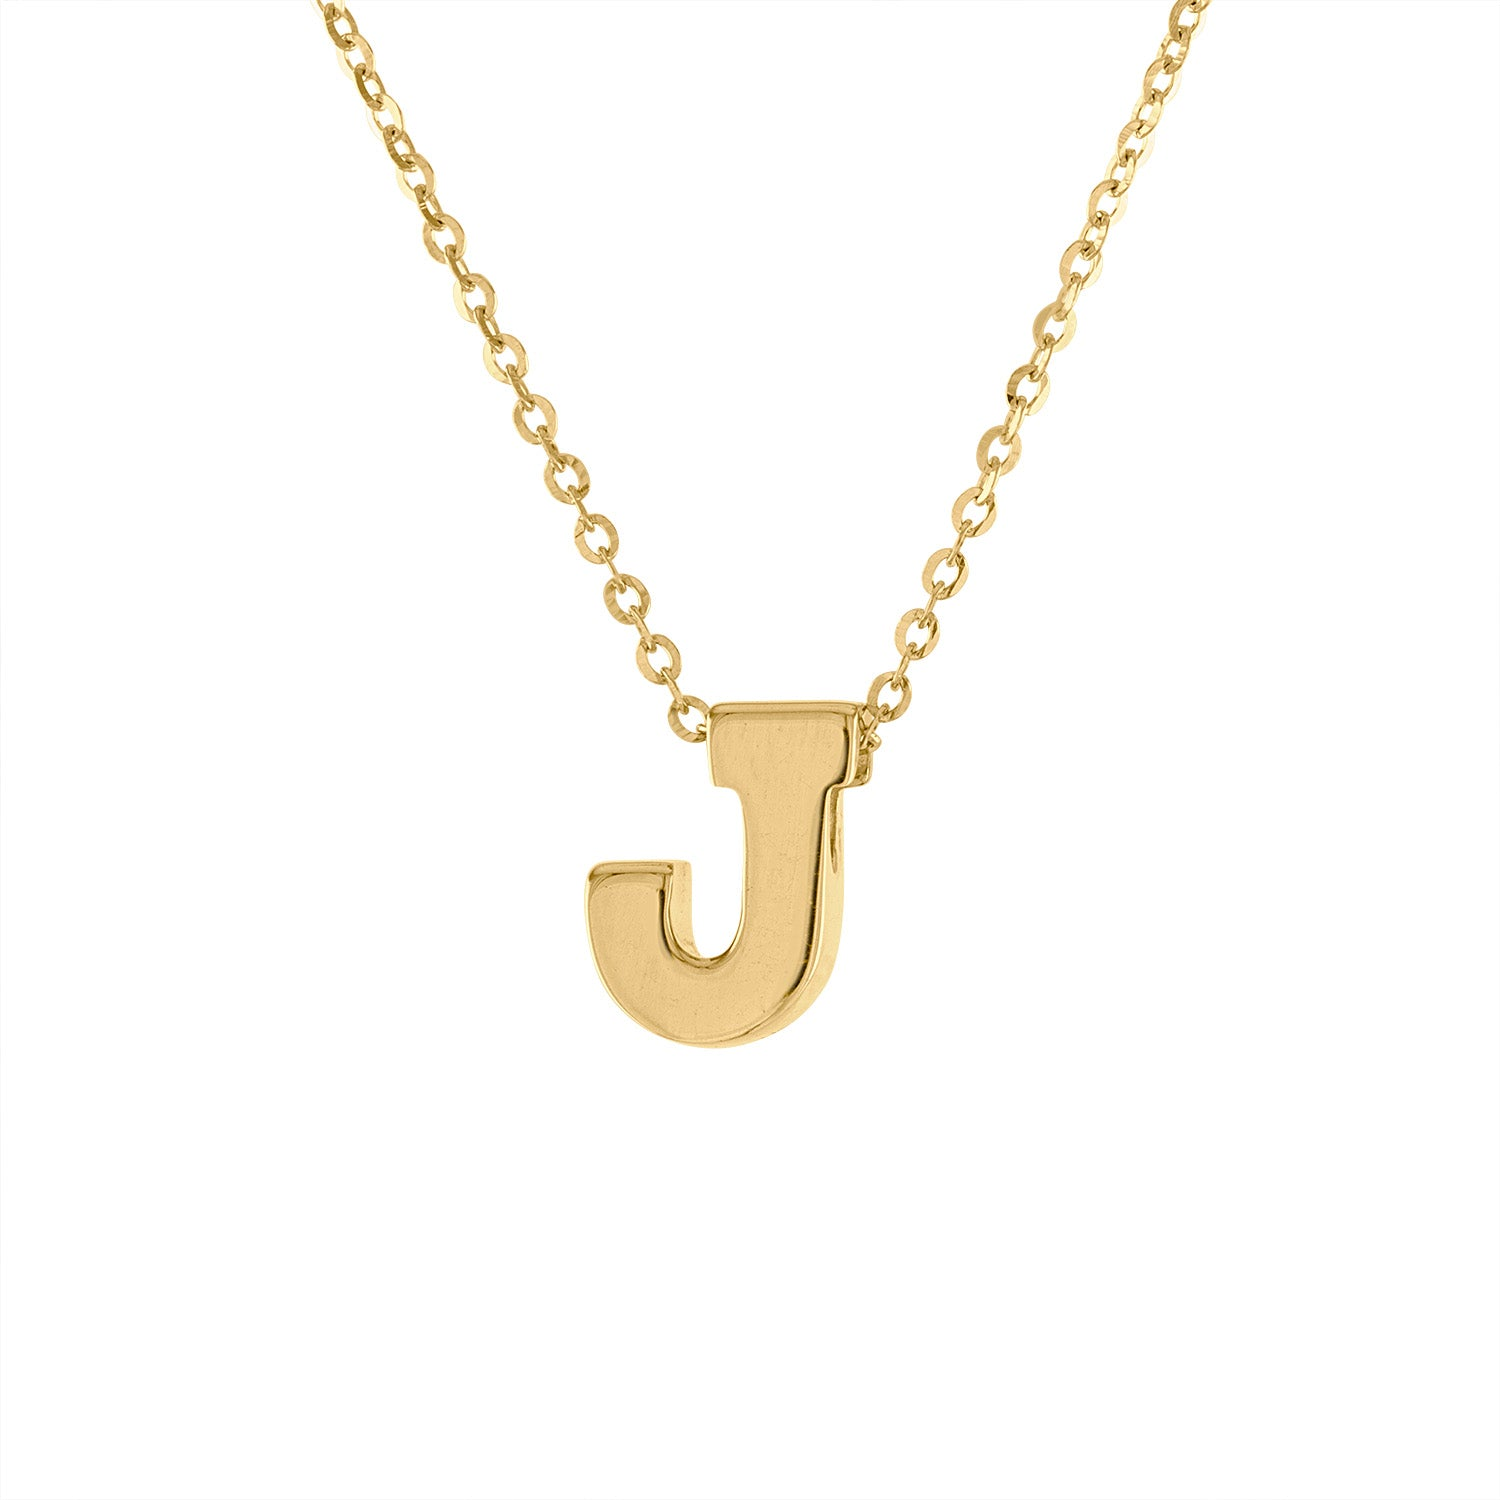 14k Yellow Gold plain initial J necklace